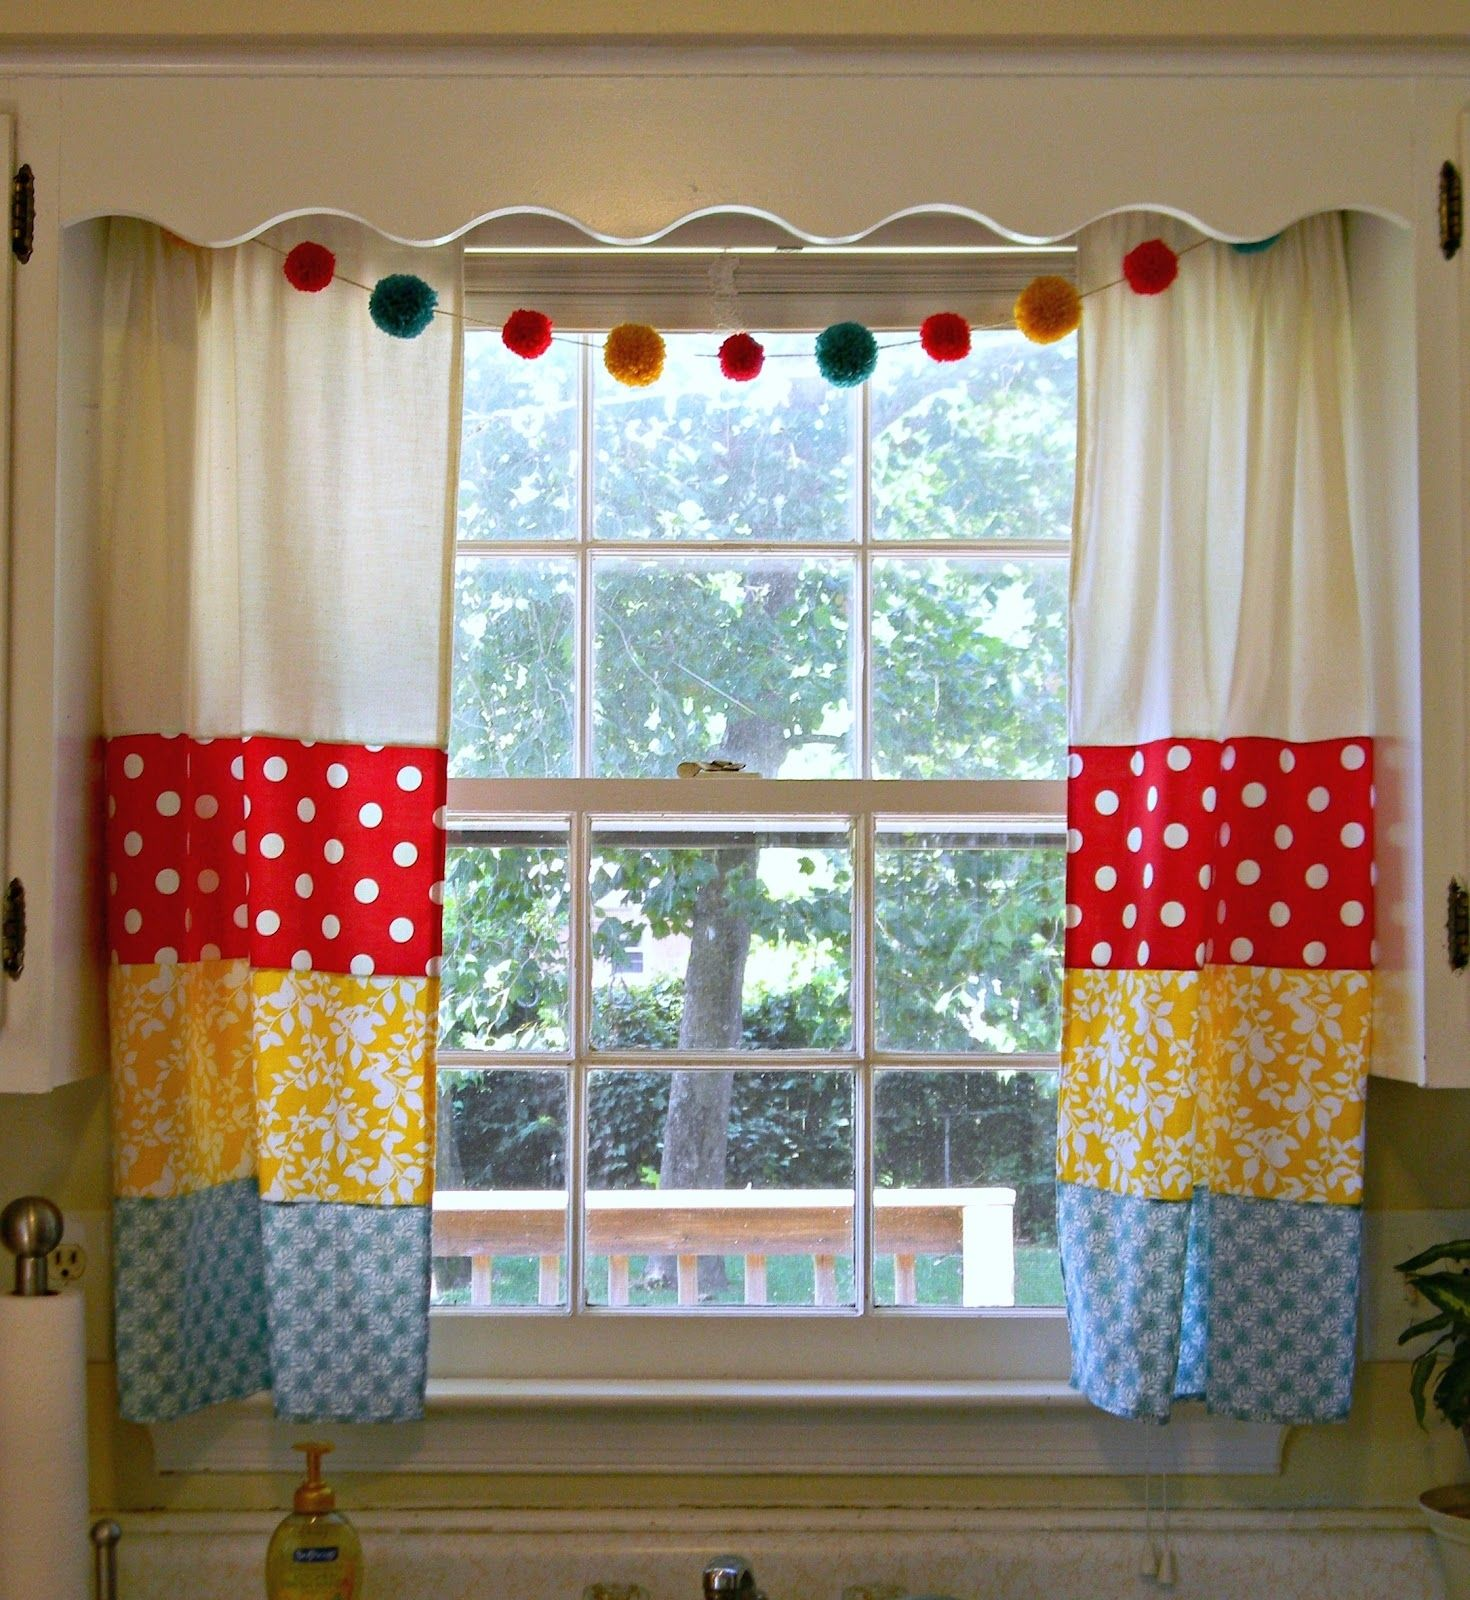 Vintage kitchen window curtains realtagfo pinterest